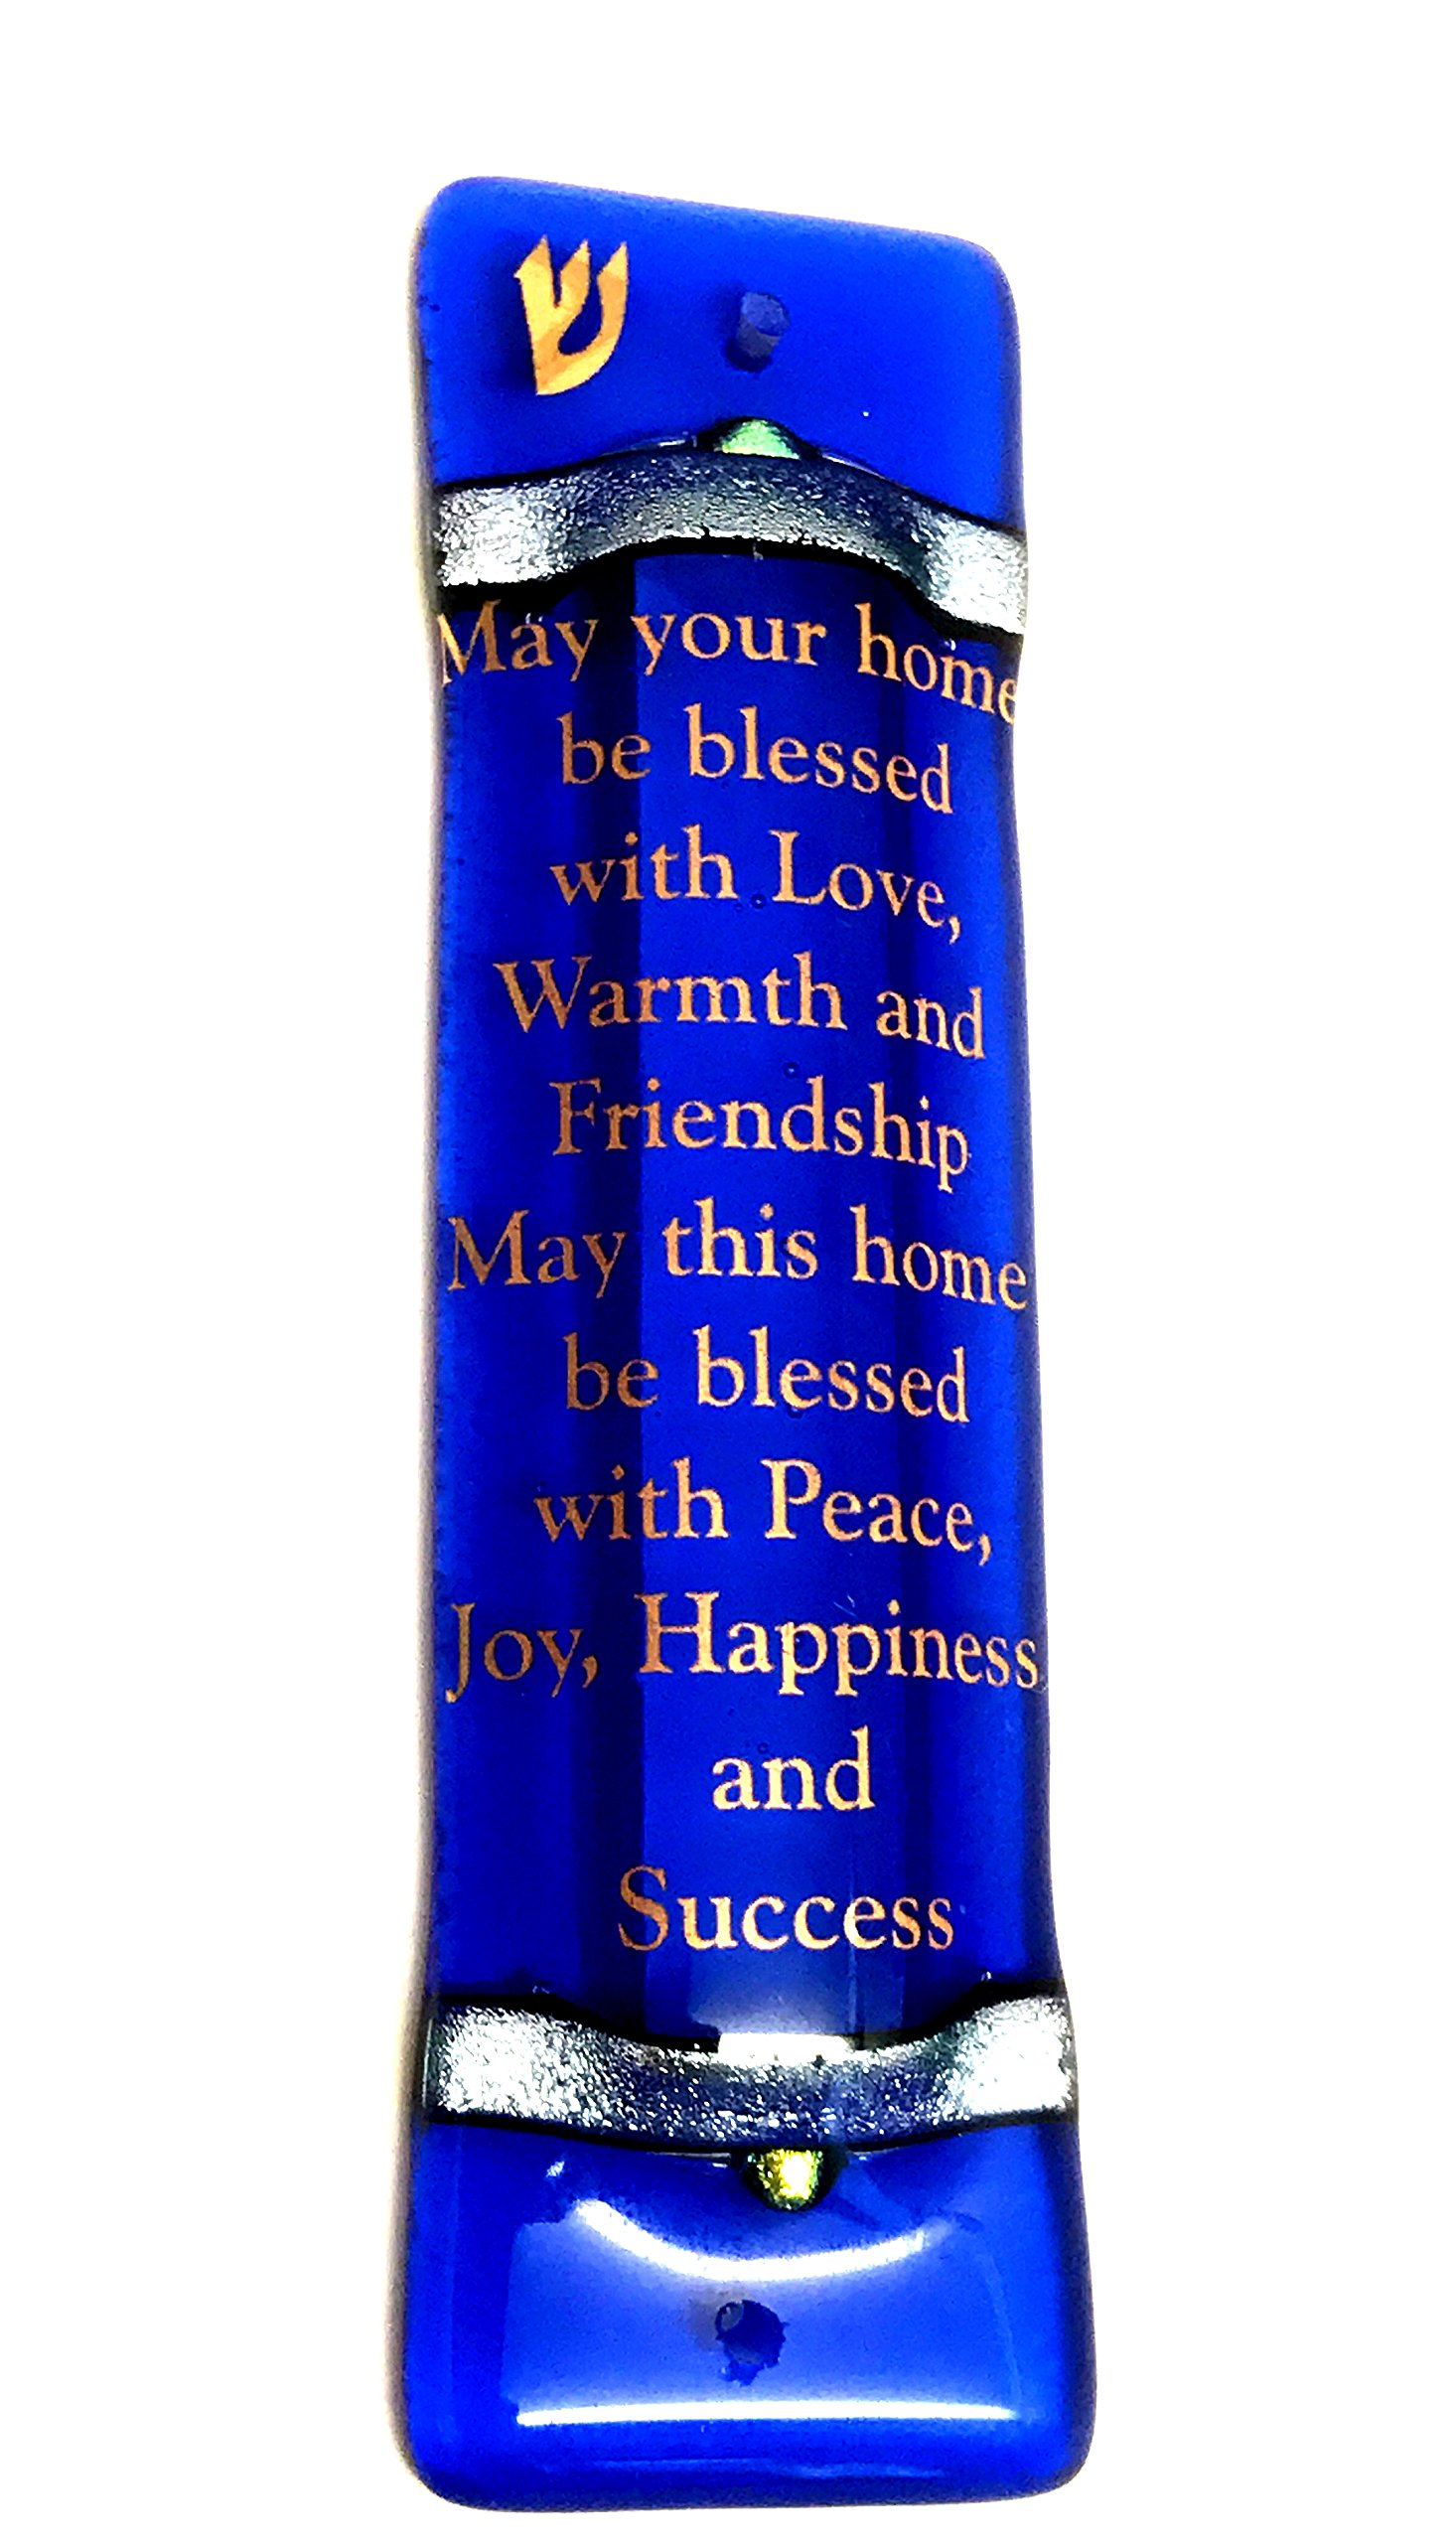 Tamara Baskin Art Glass Sky Blue Art Glass Home Blessing Mezuzah for Door, Gift Boxed with Non Kosher Scroll Included PROUDLY HANDMADE in USA Indoor or Outdoor Use